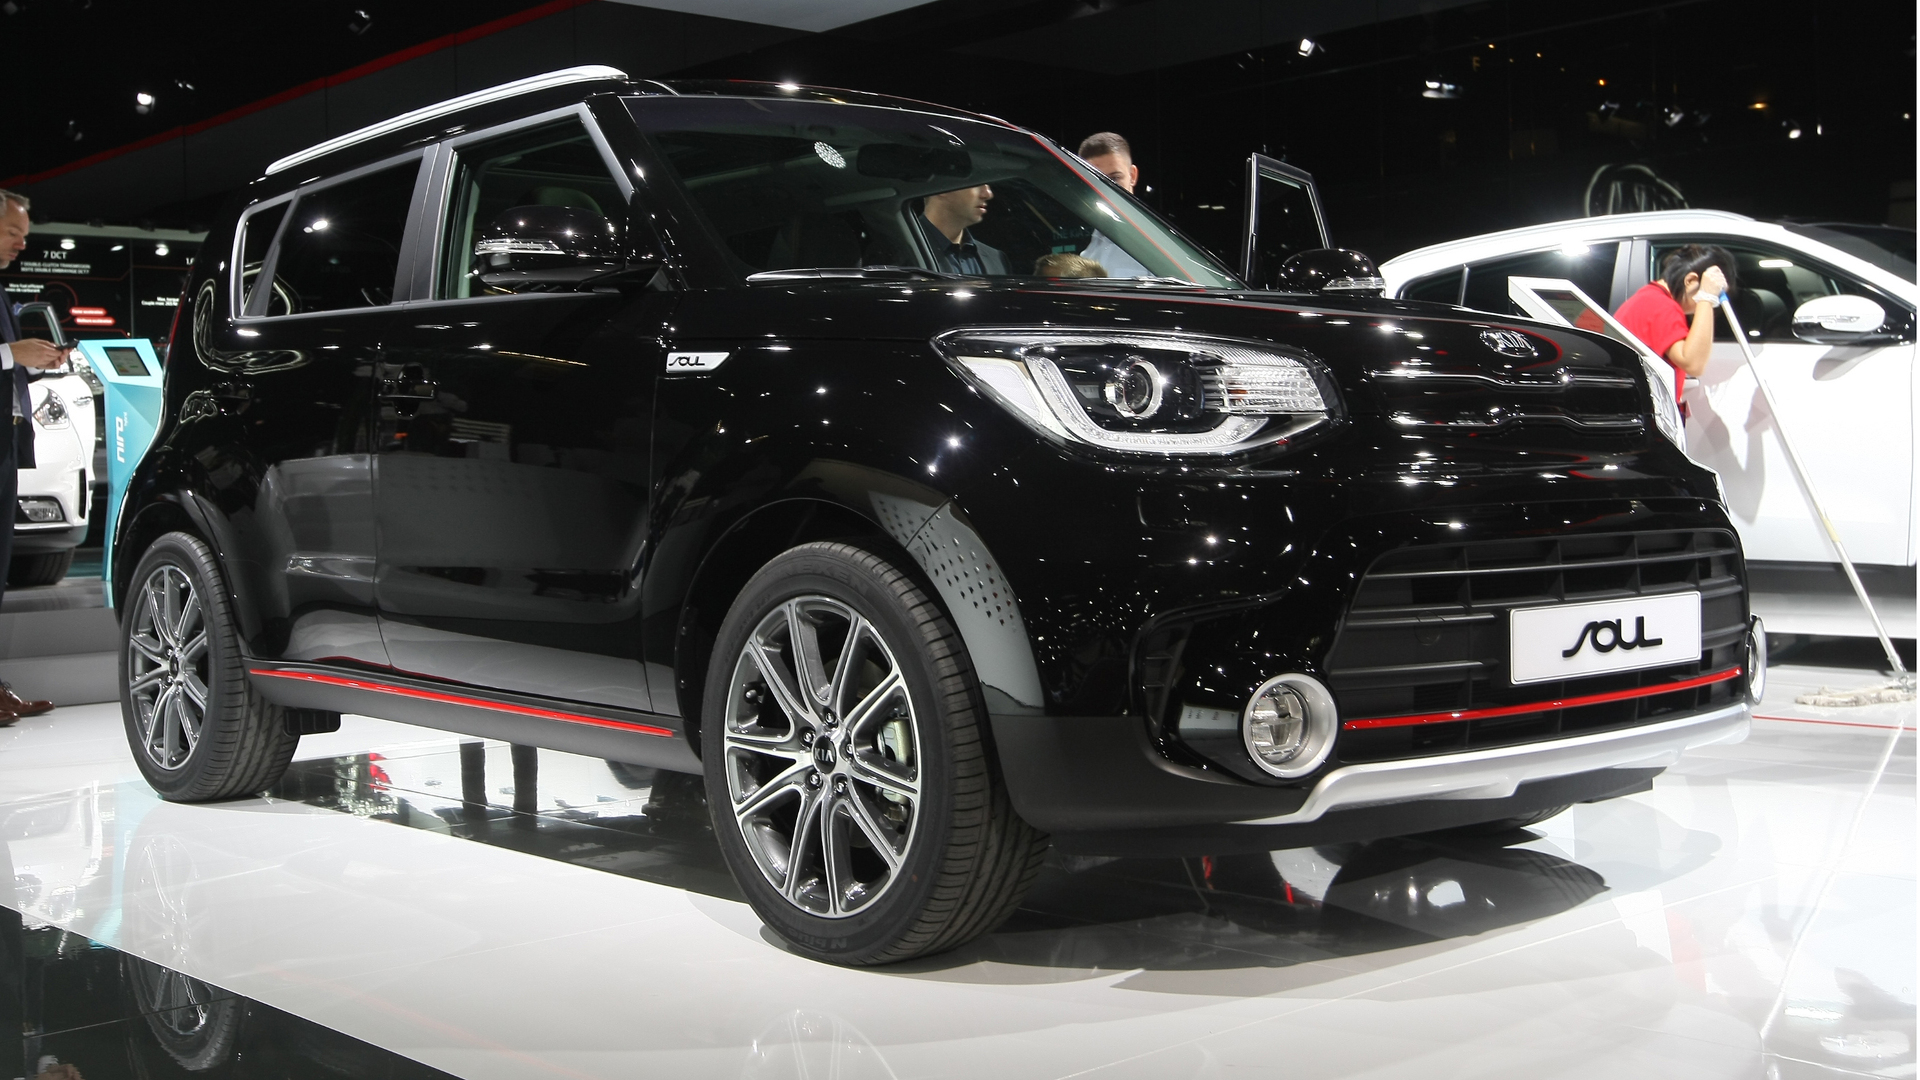 Facelifted kia soul sx bows in paris with 201 hp turbo motor for Kia motor company usa